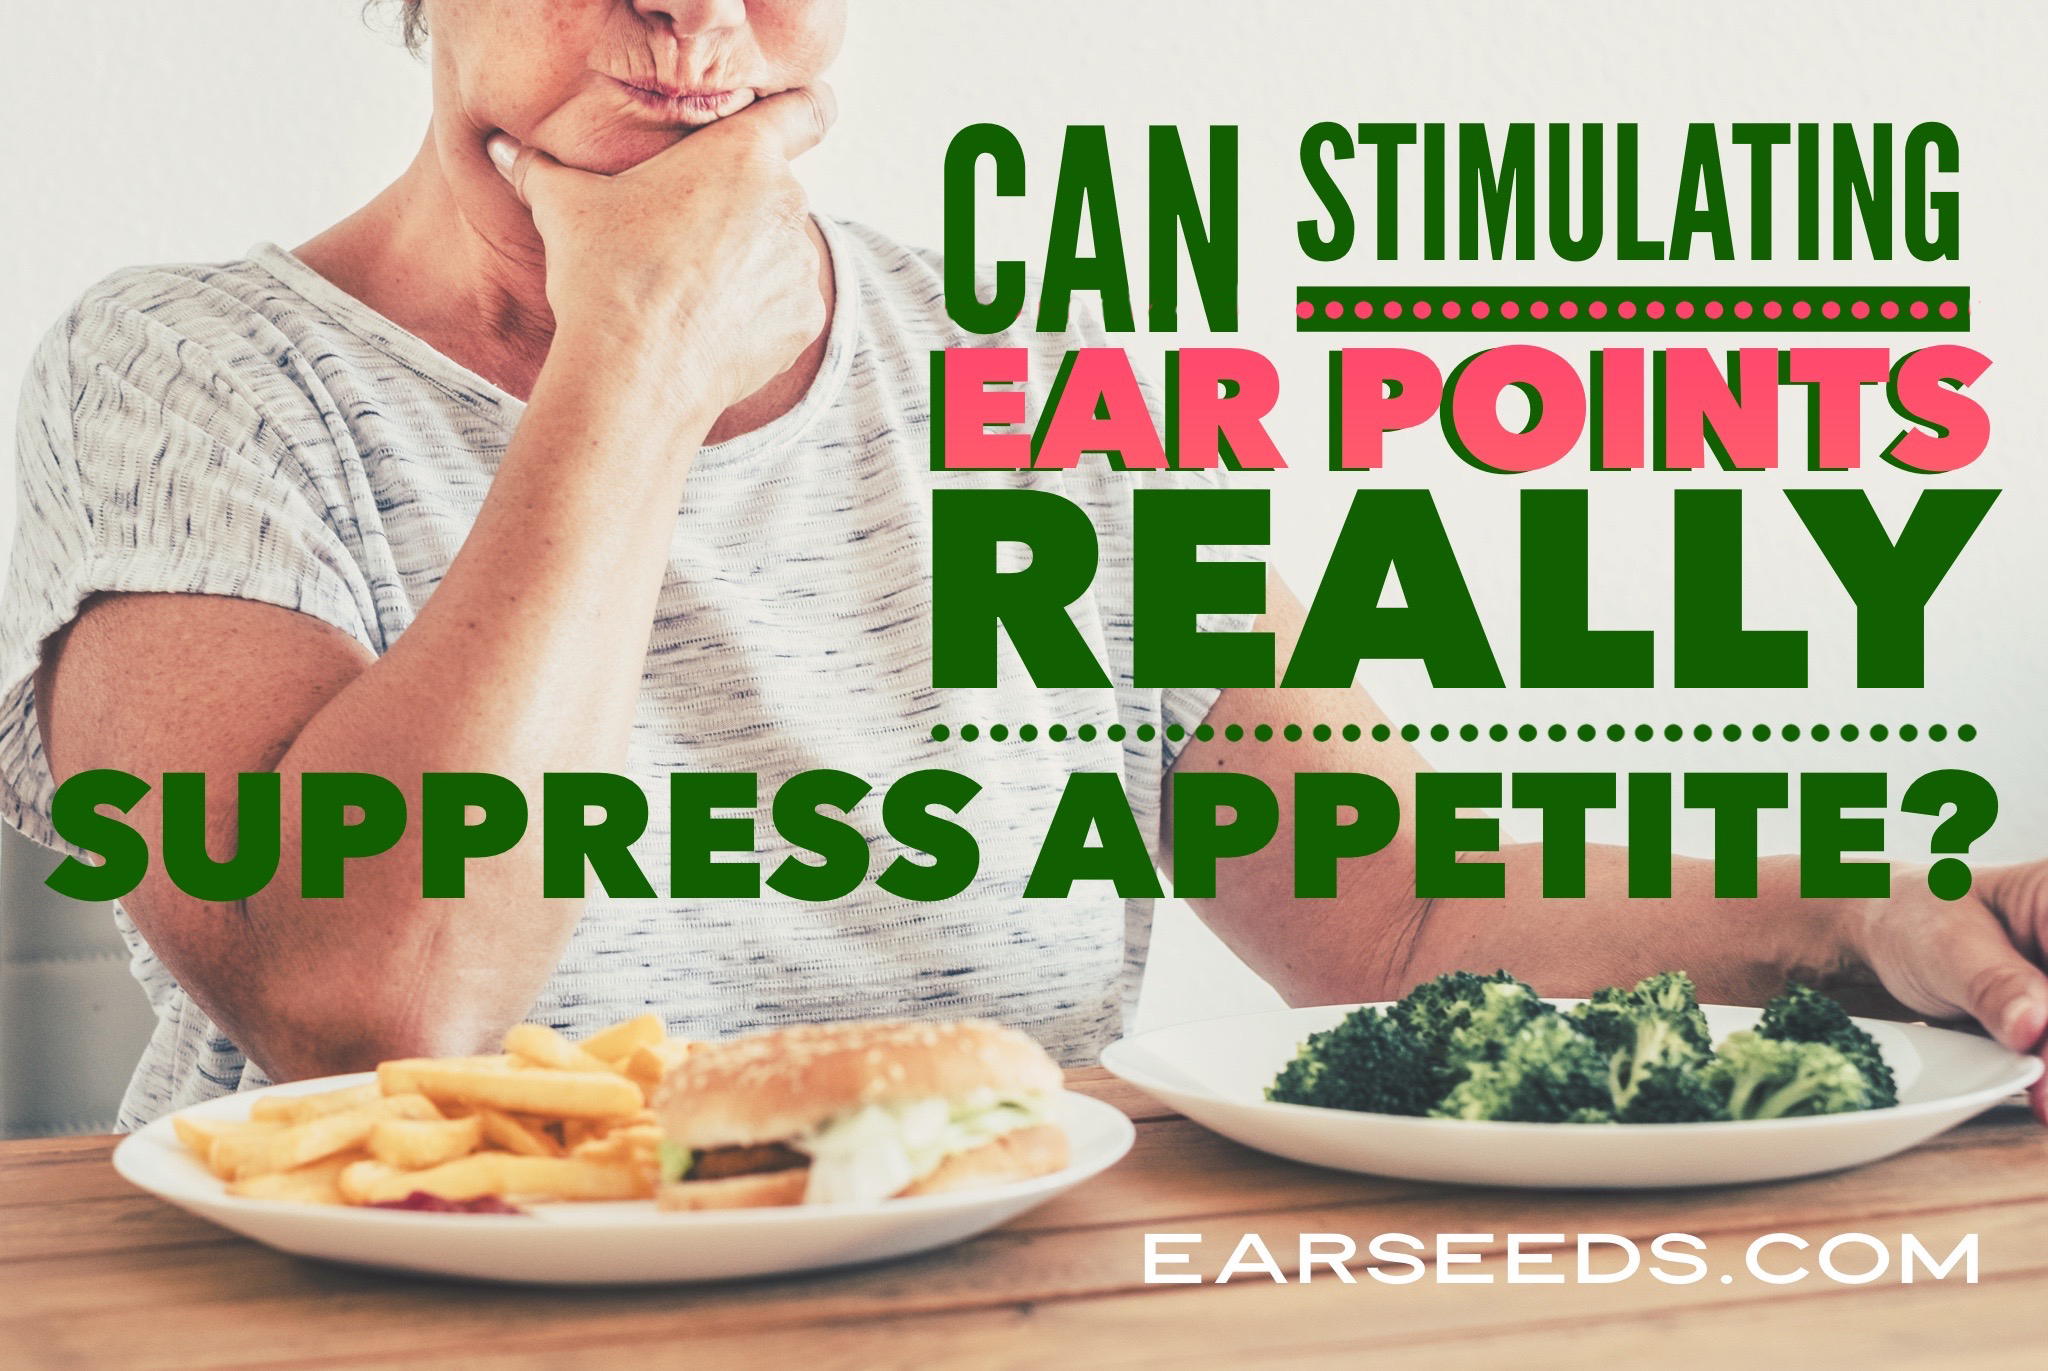 Can Stimulating Ear Points Really Suppress Appetite?